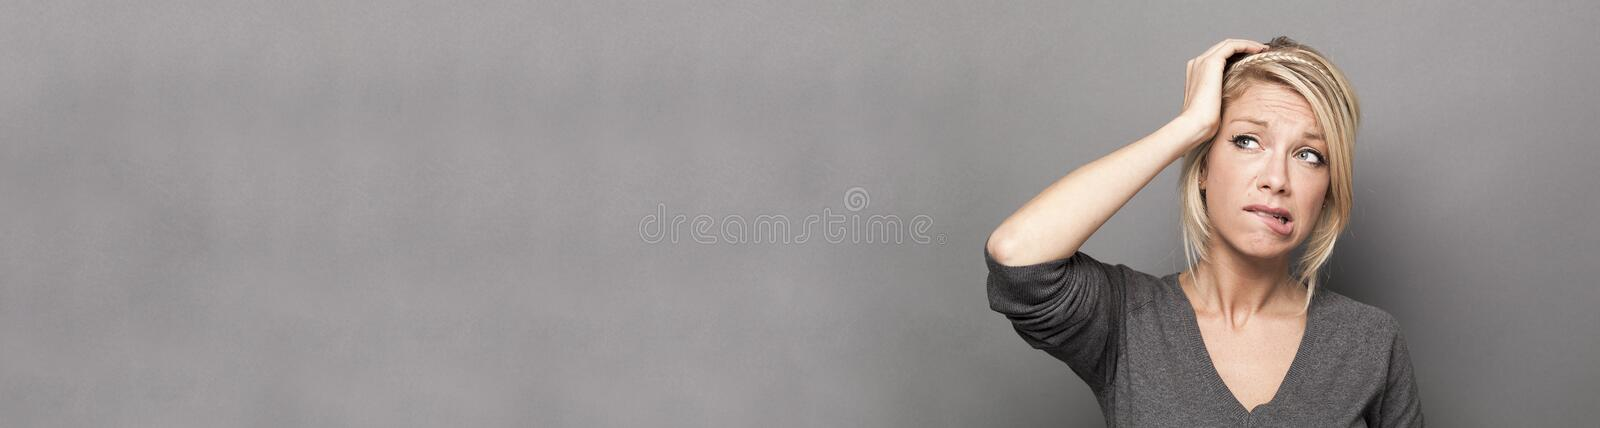 Doubt and worry concept for anxious young woman, copy space stock photo